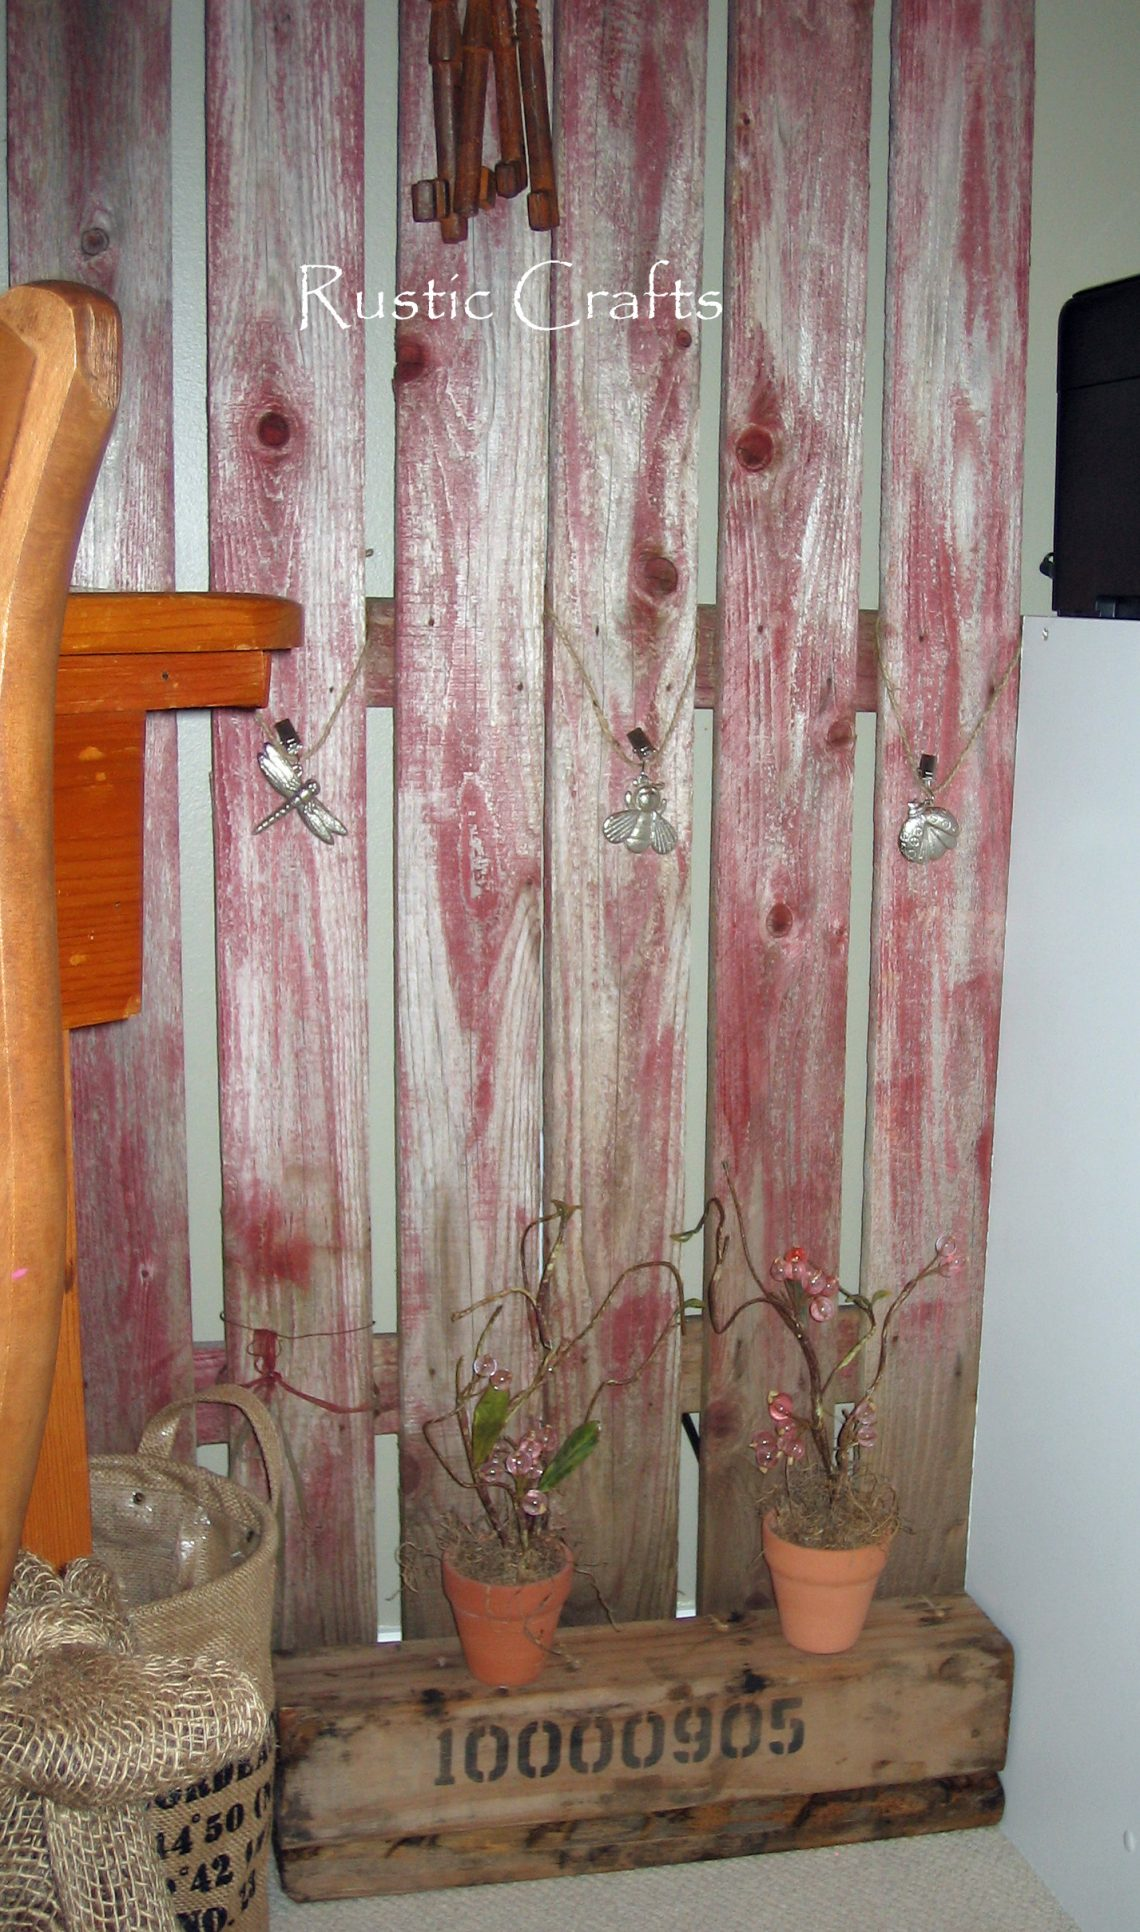 Use An Old Picket Fence For Unique Wall Decor | Rustic Crafts ...